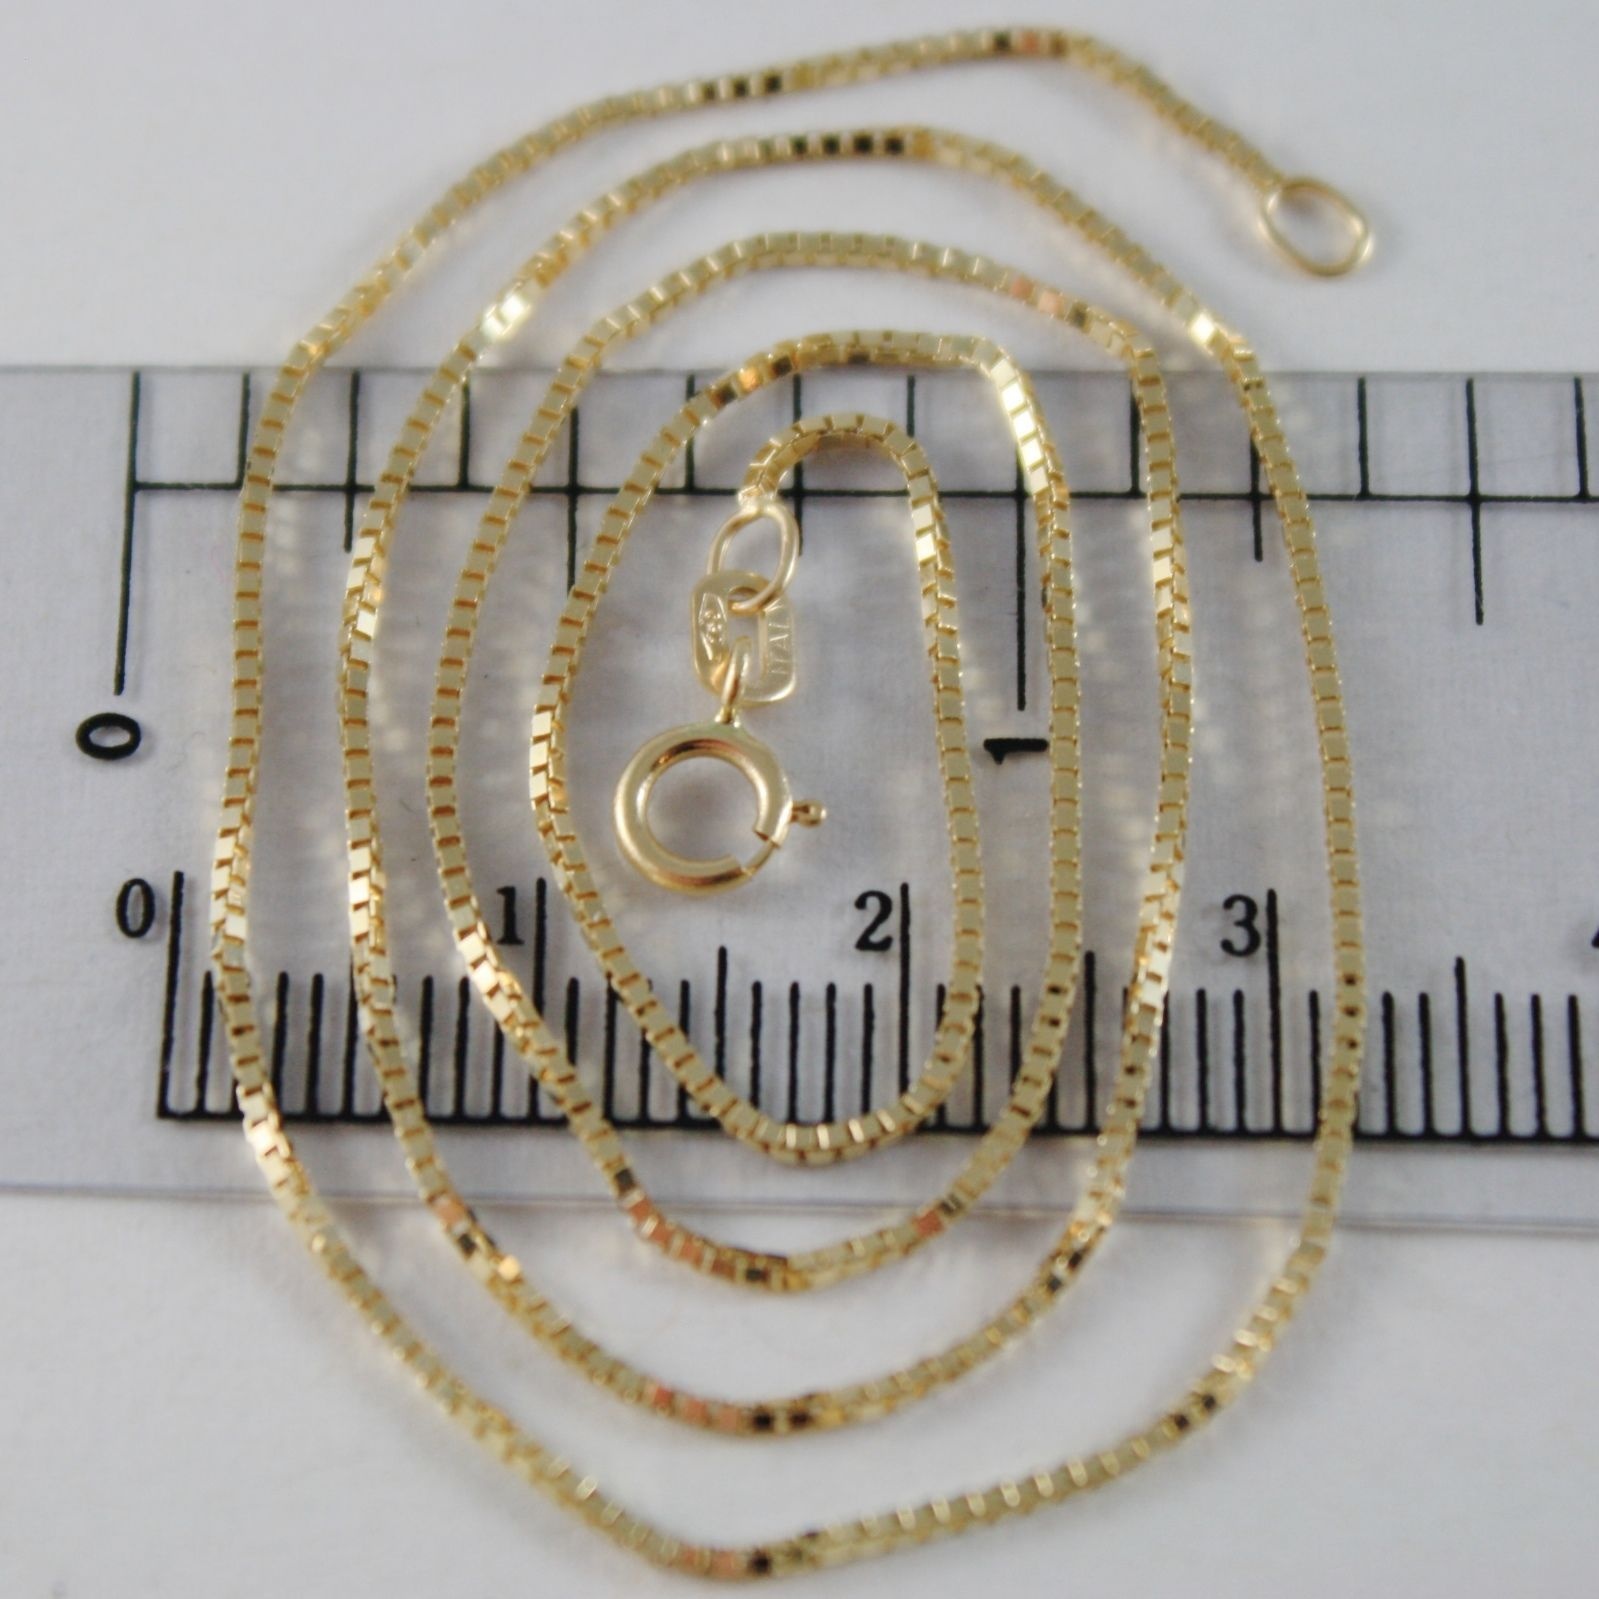 18K YELLOW GOLD CHAIN 1 MM VENETIAN SQUARE MESH 17.71 INCHES, MADE IN ITALY